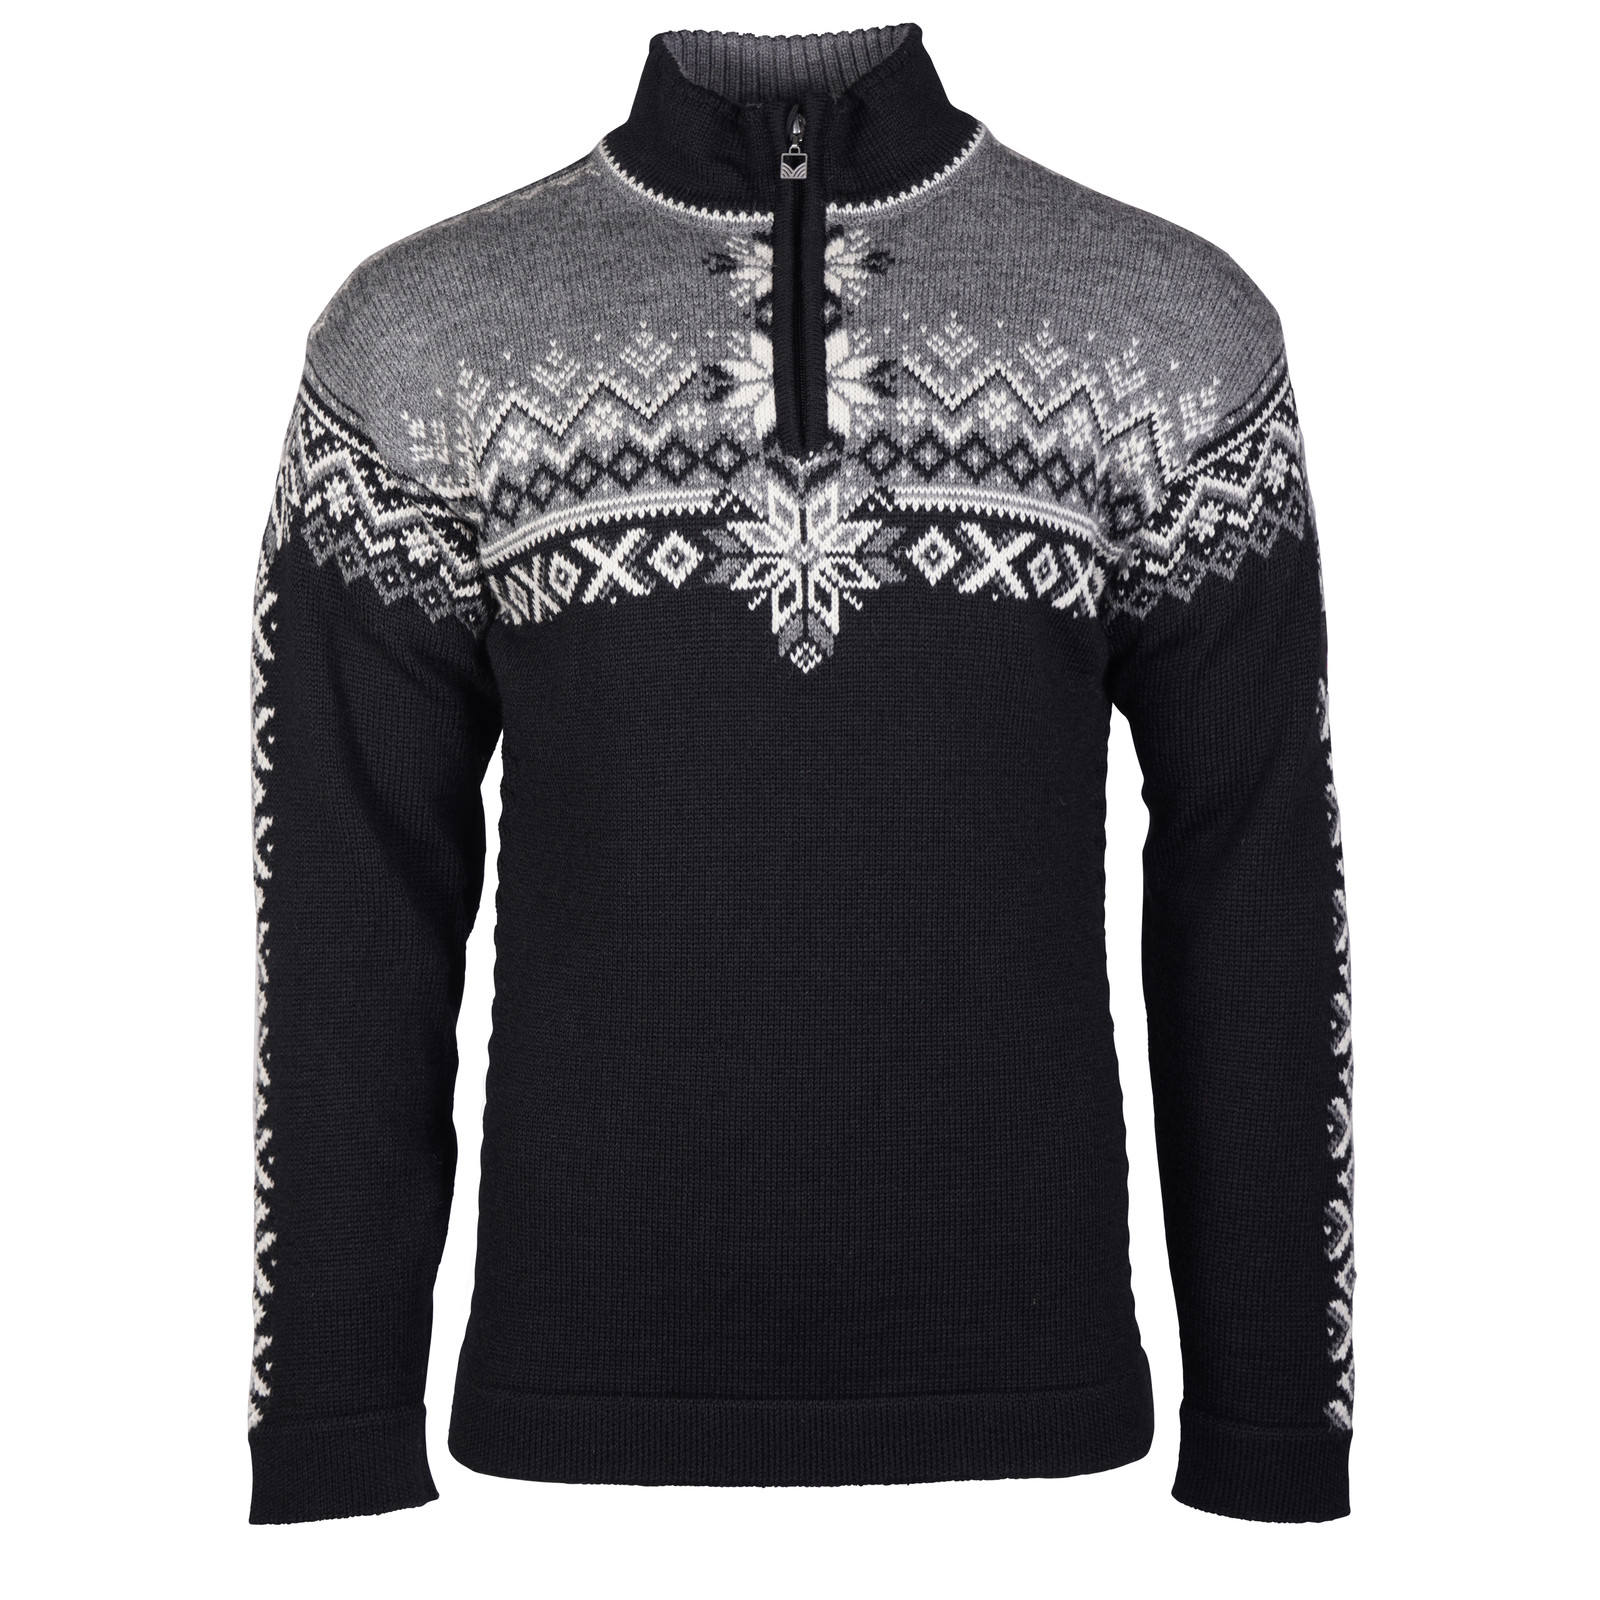 Dale of Norway 140th Anniversary Sweater, Mens - Black/Smoke/Off White, 93951-F